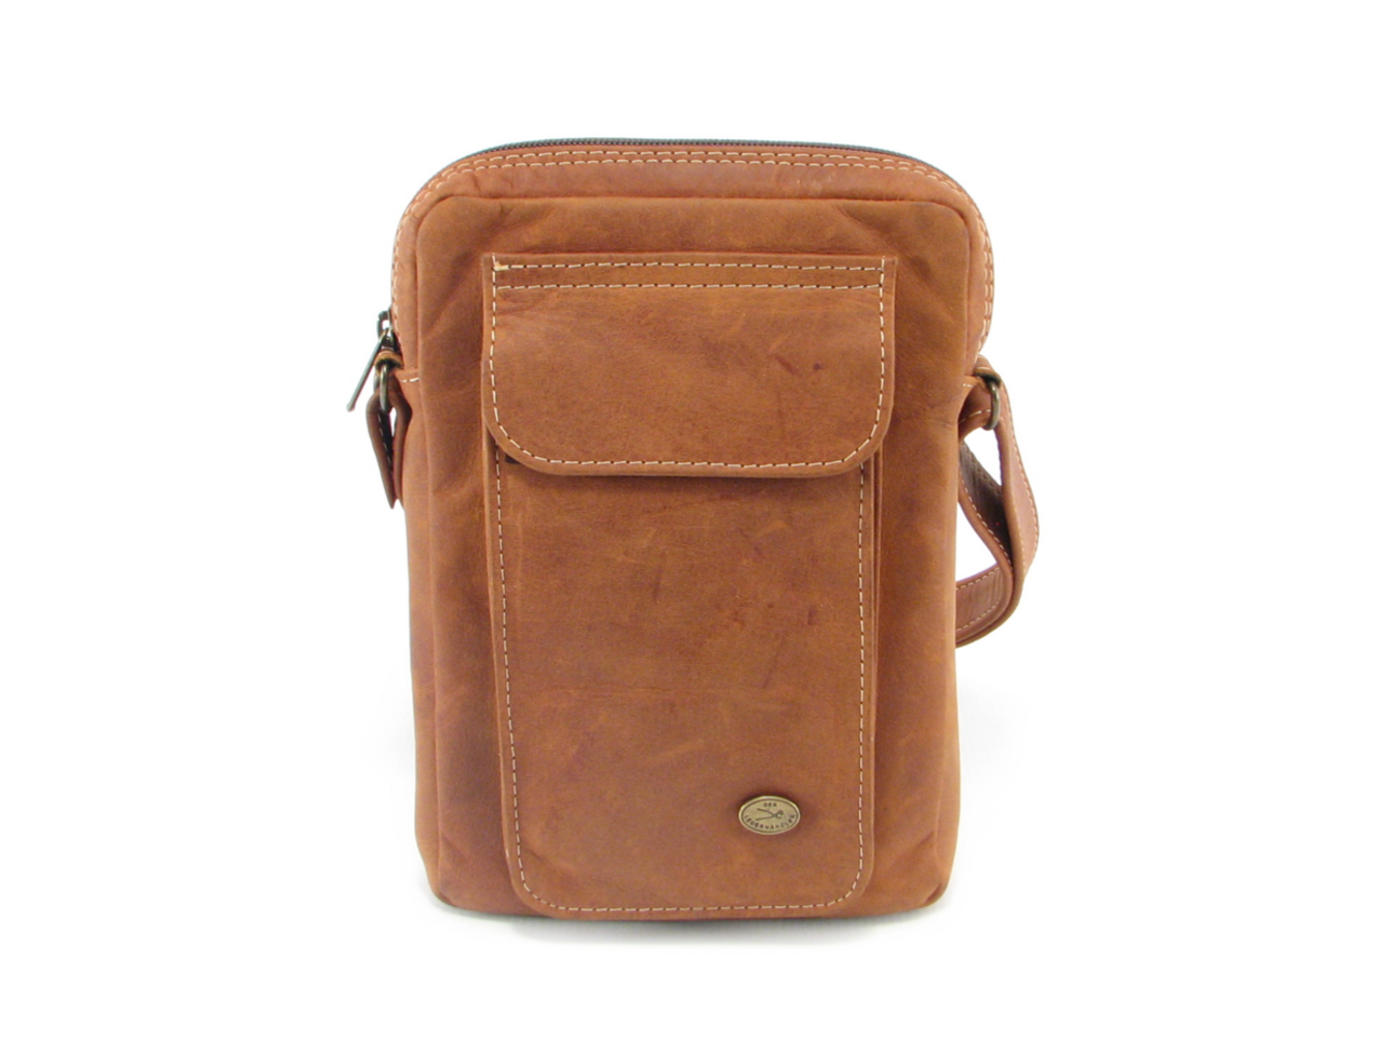 5fd1ac21b4 Genuine leather wallet sling bag